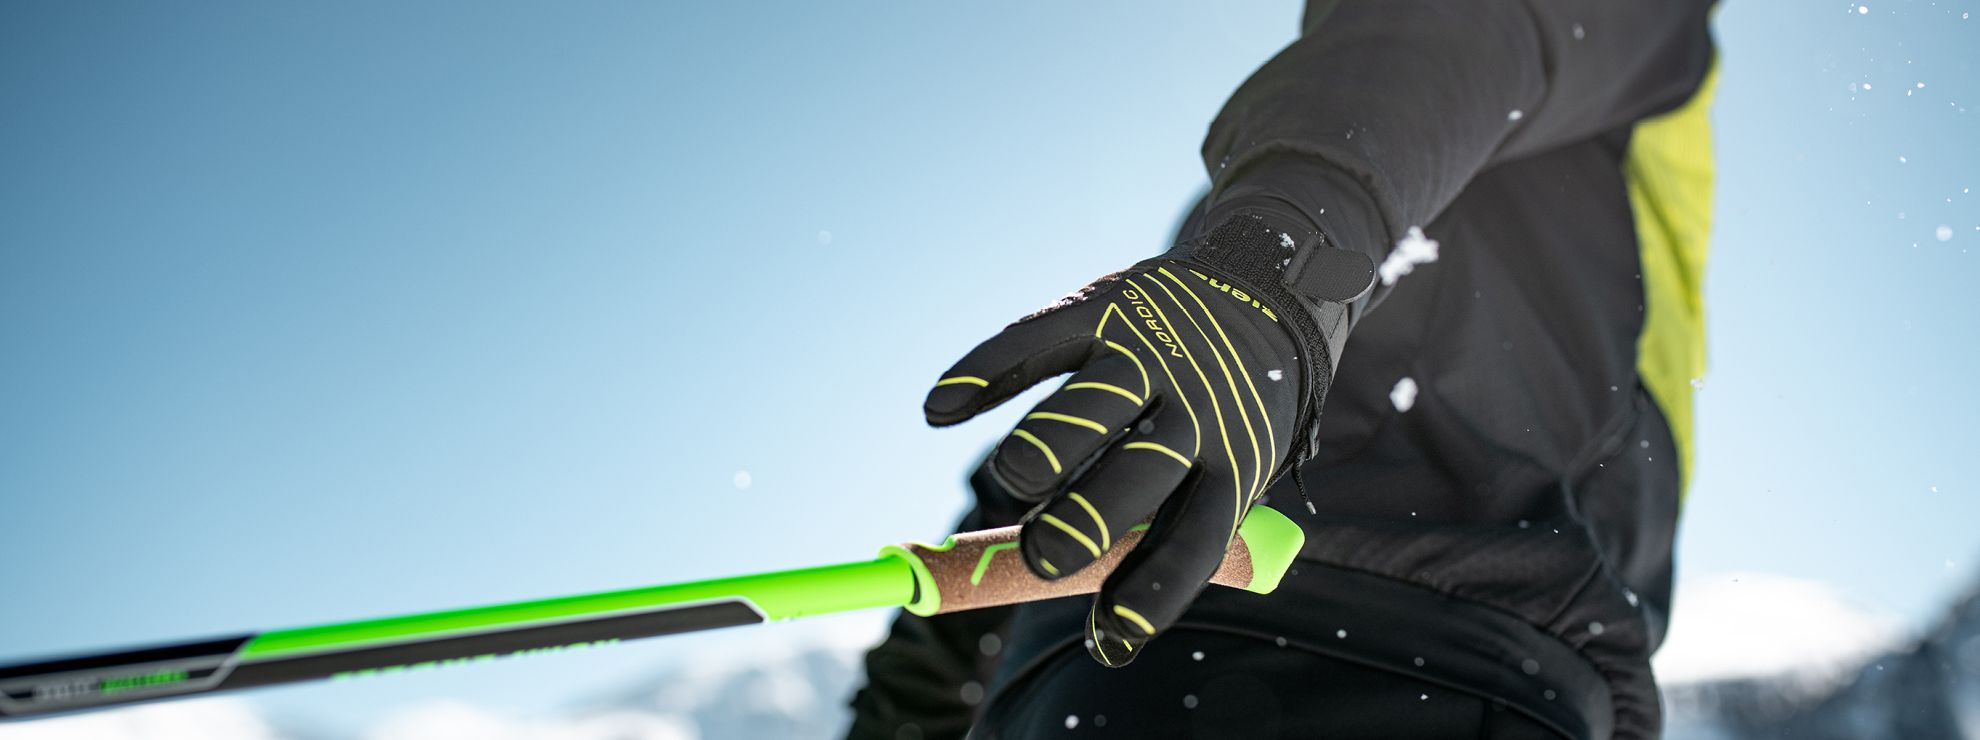 Cross country skiing & biathlon gloves